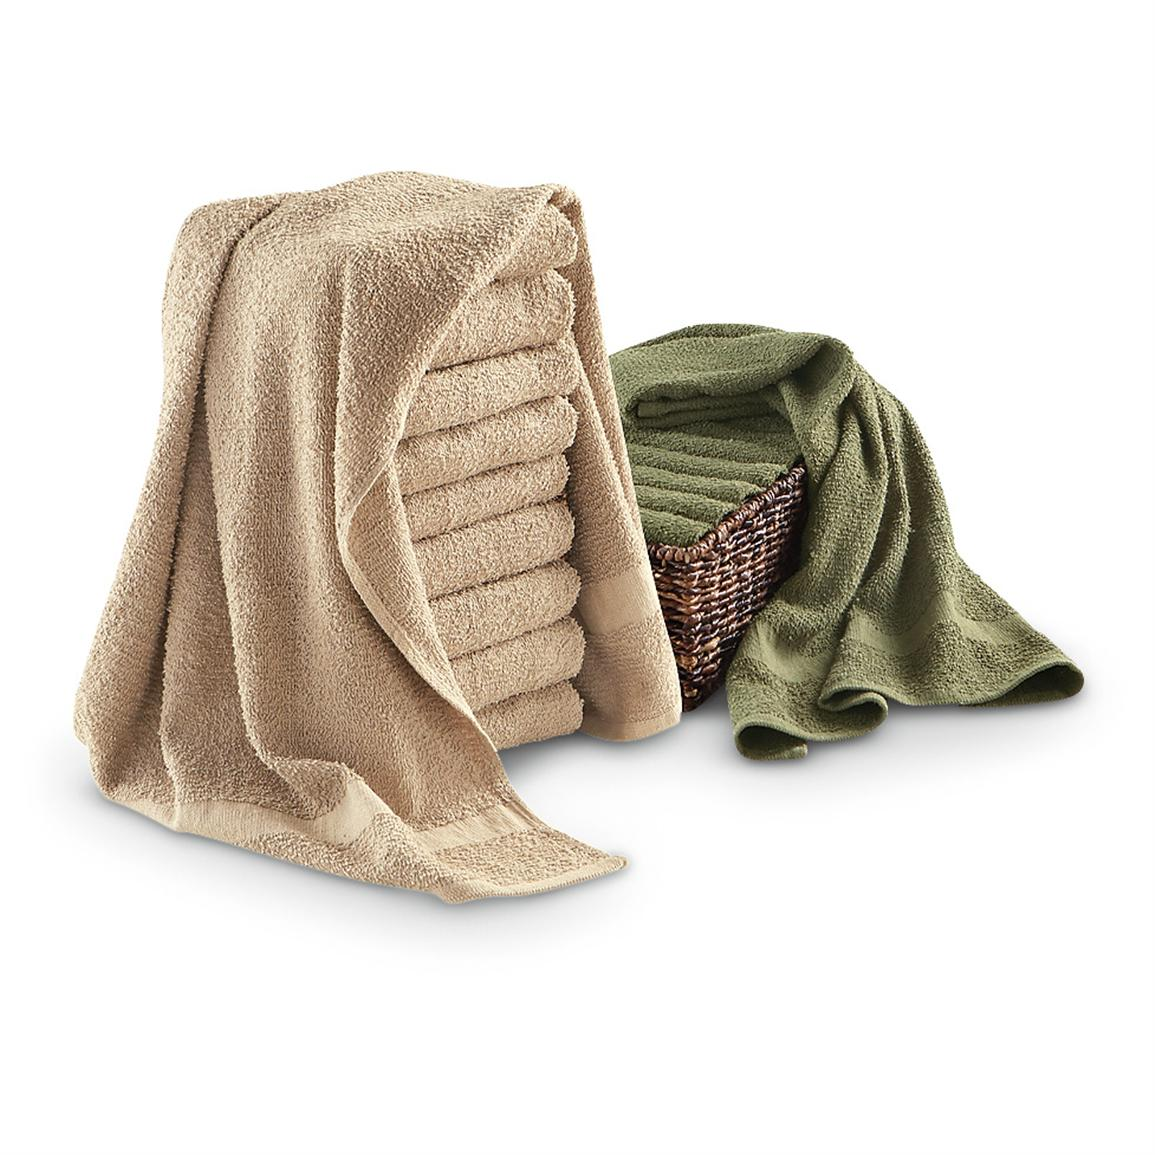 10 Cotton Terry Towels • Khaki or Olive